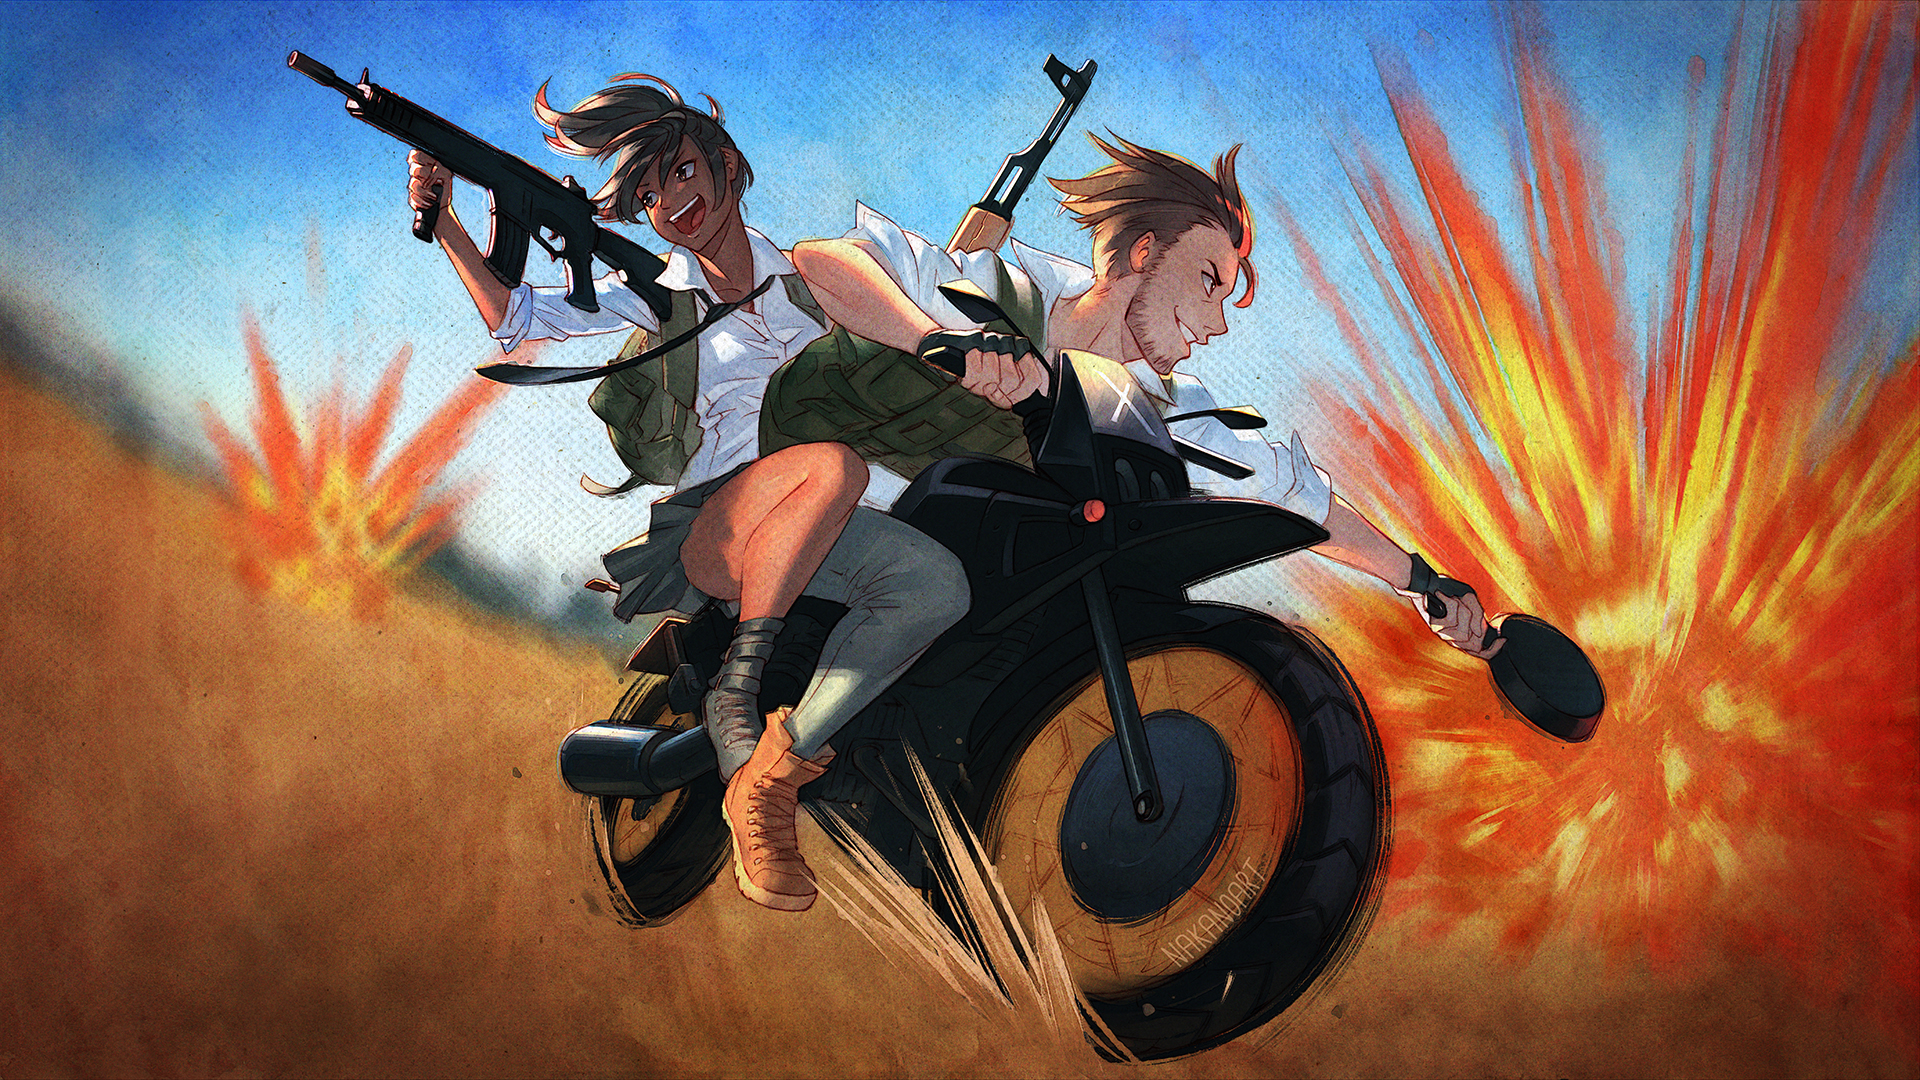 2048x1152 Pubg Game Girl Fanart 2048x1152 Resolution Hd 4k: 1920x1080 PlayerUnknowns Battlegrounds Artwork Laptop Full